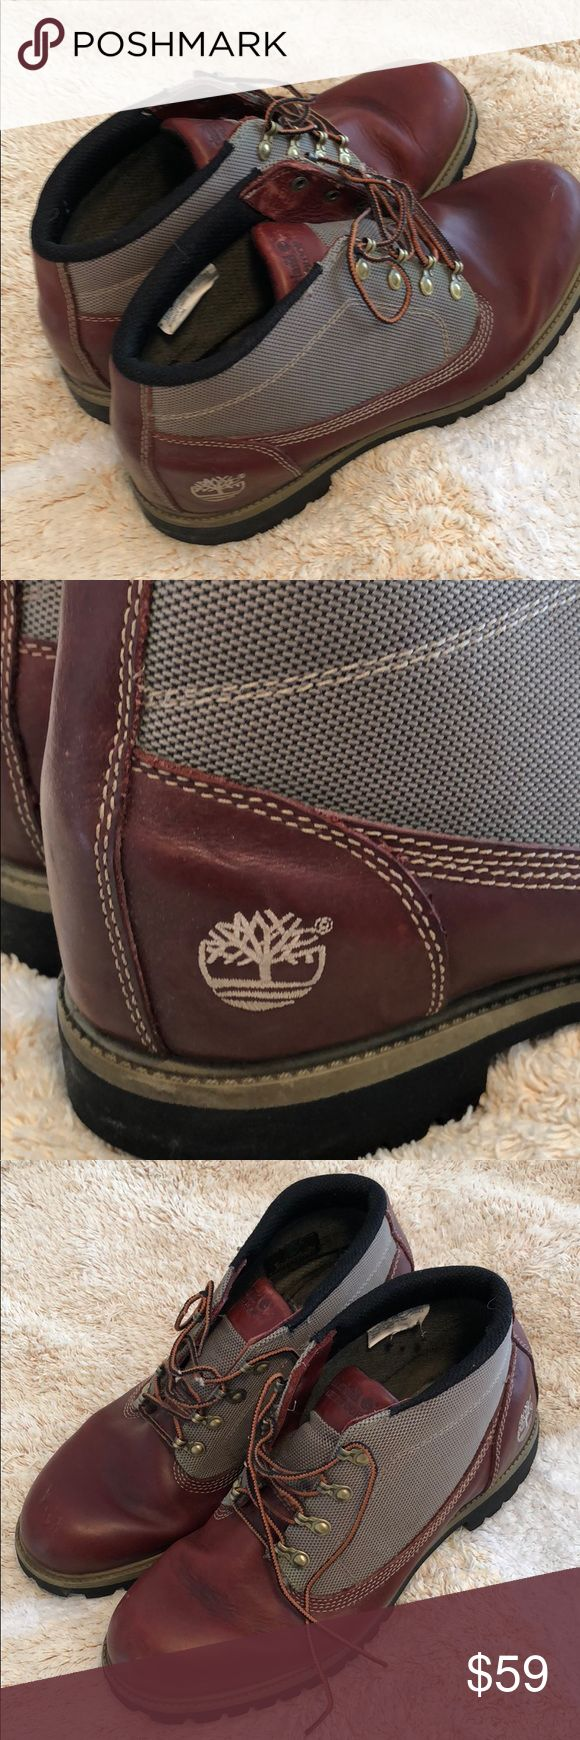 Leather Timberland boots. Light wear. Leather excellent condition.   smoke free pet free home. Timberland Shoes